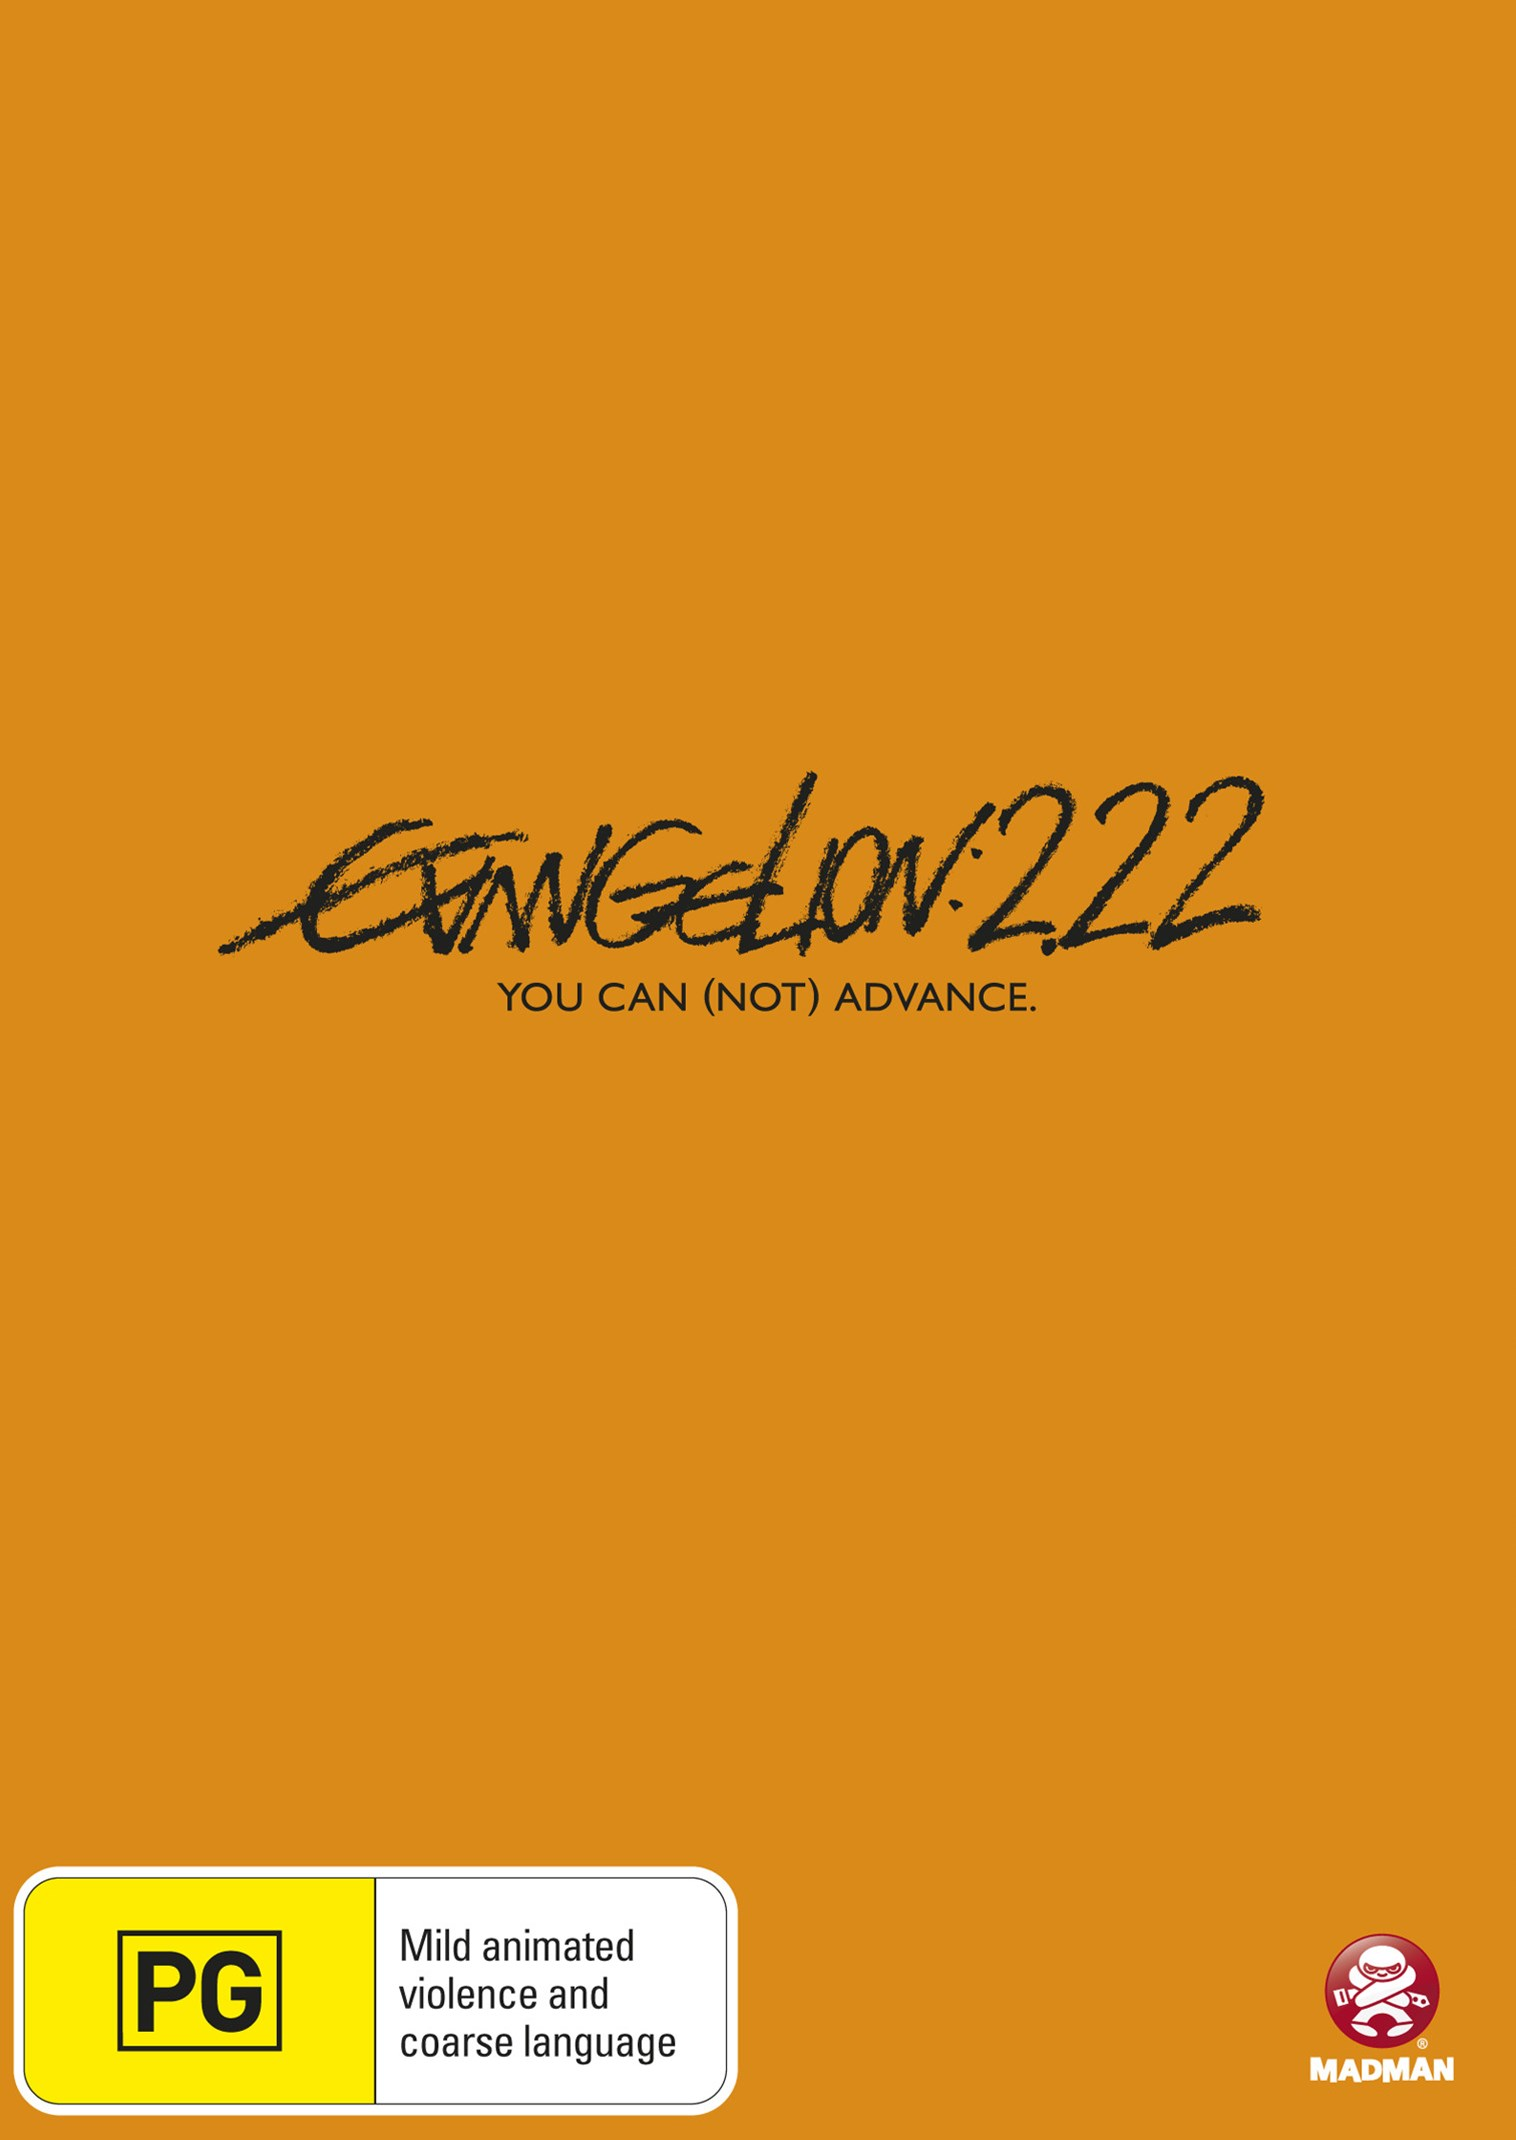 Evangelion: 2.22 You Can (Not) Advance.